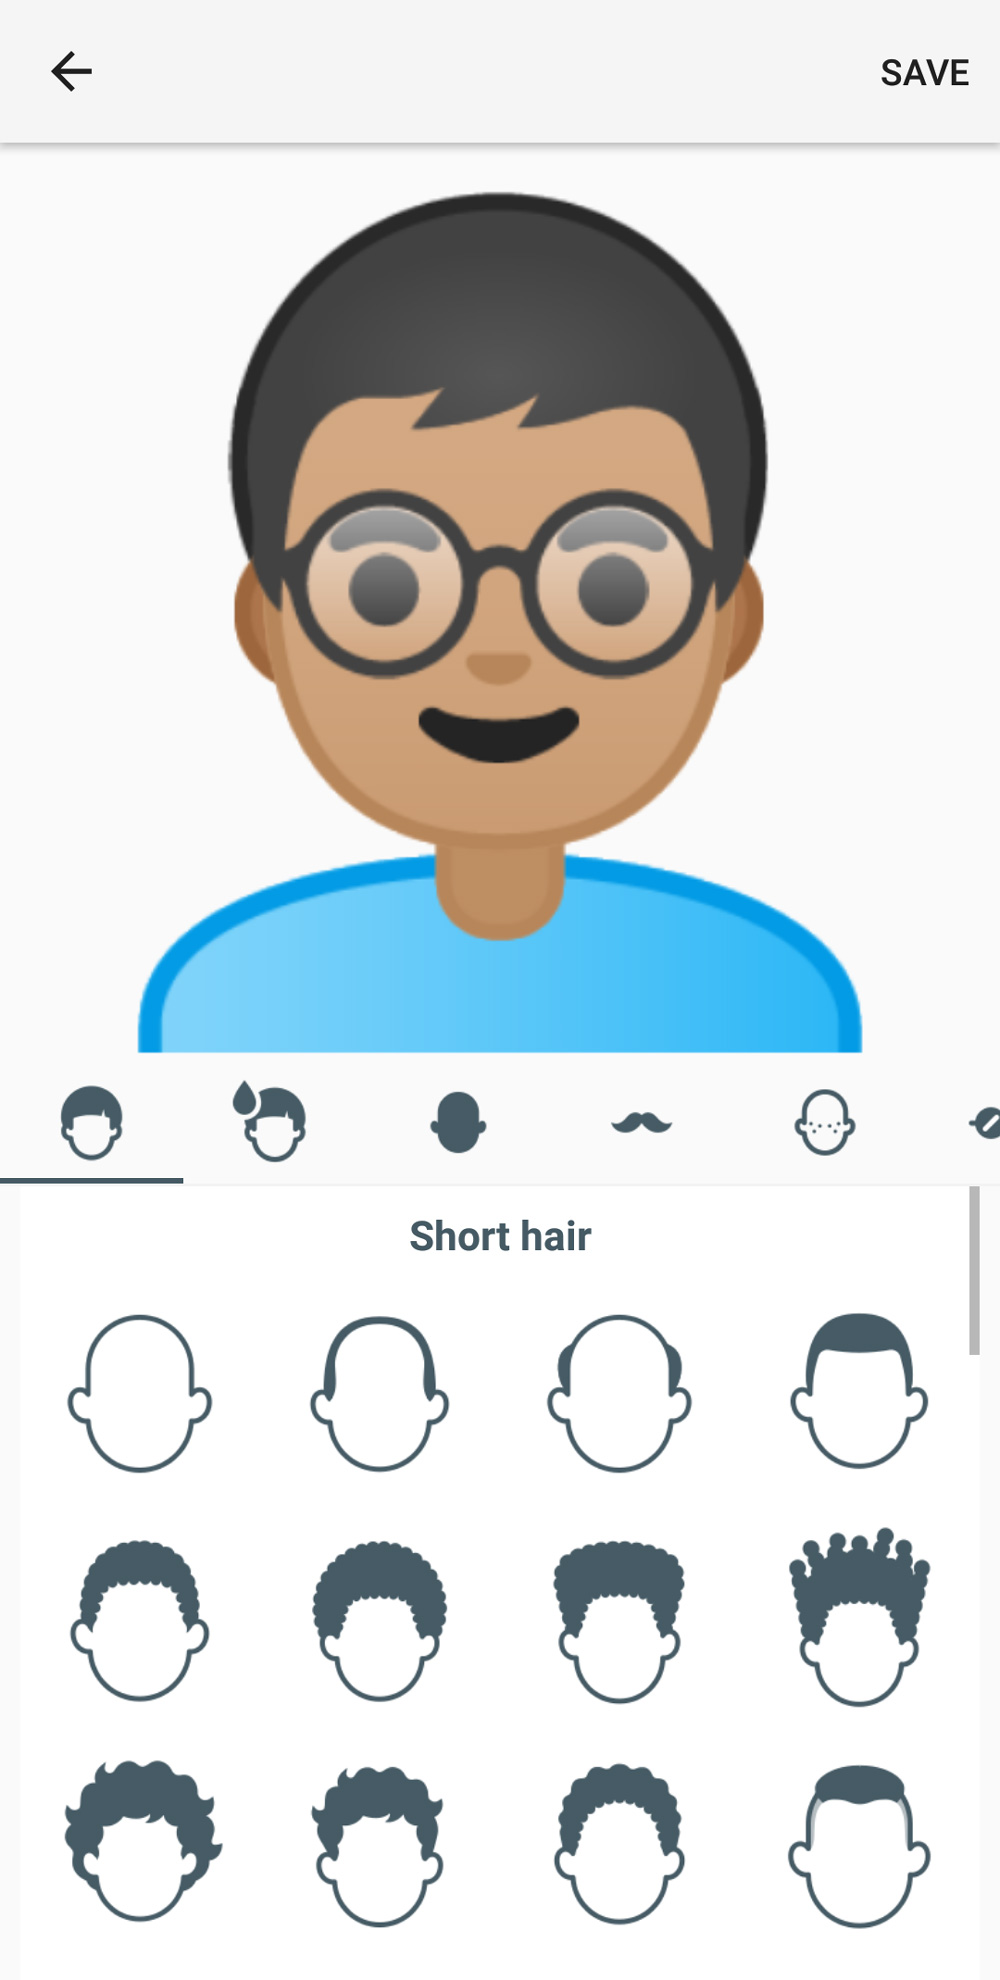 Here's How To Create Your Own Personalized Emoji With Google